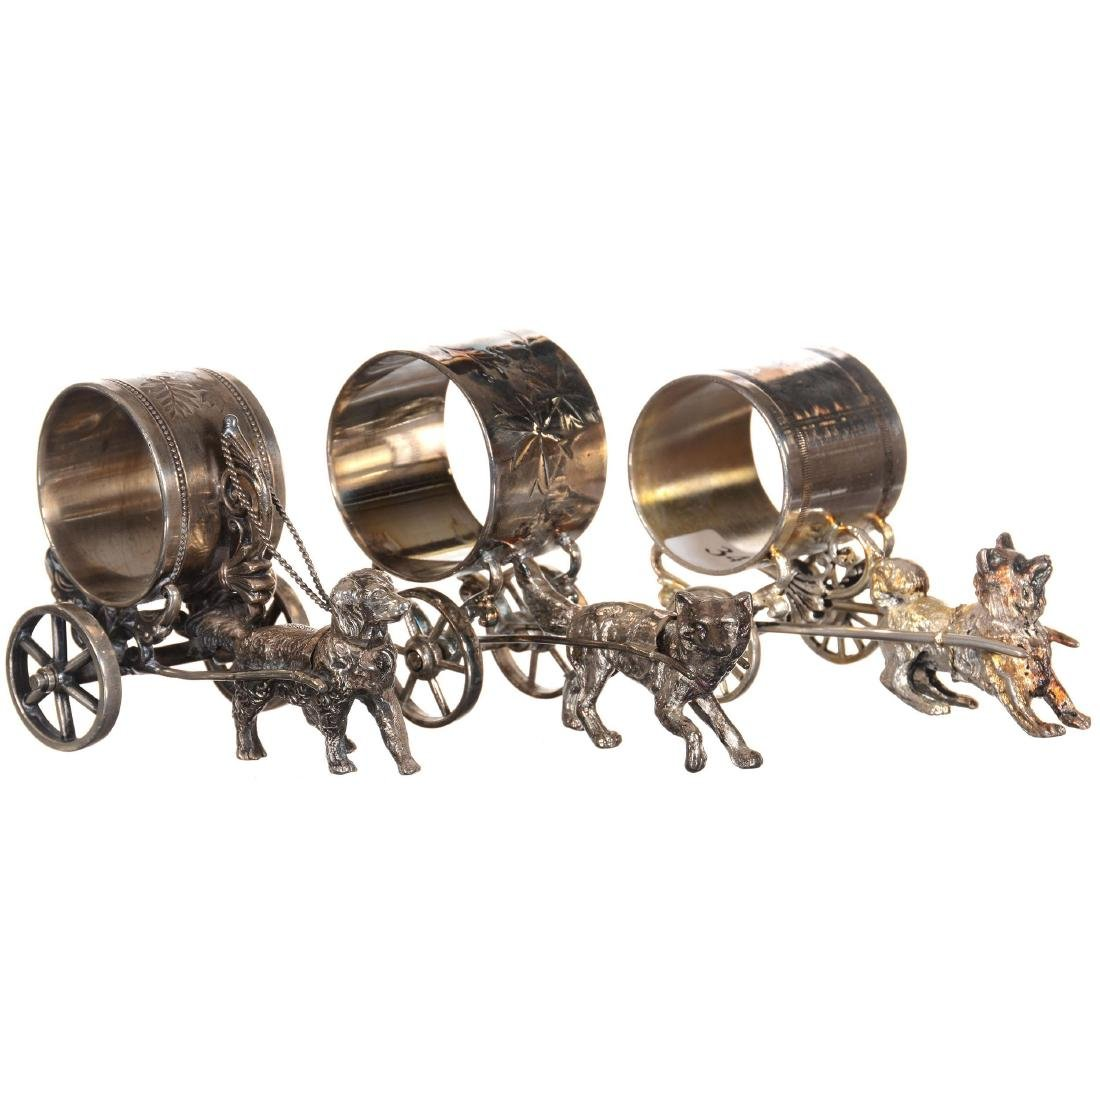 Three Silver-plate Napkin Rings